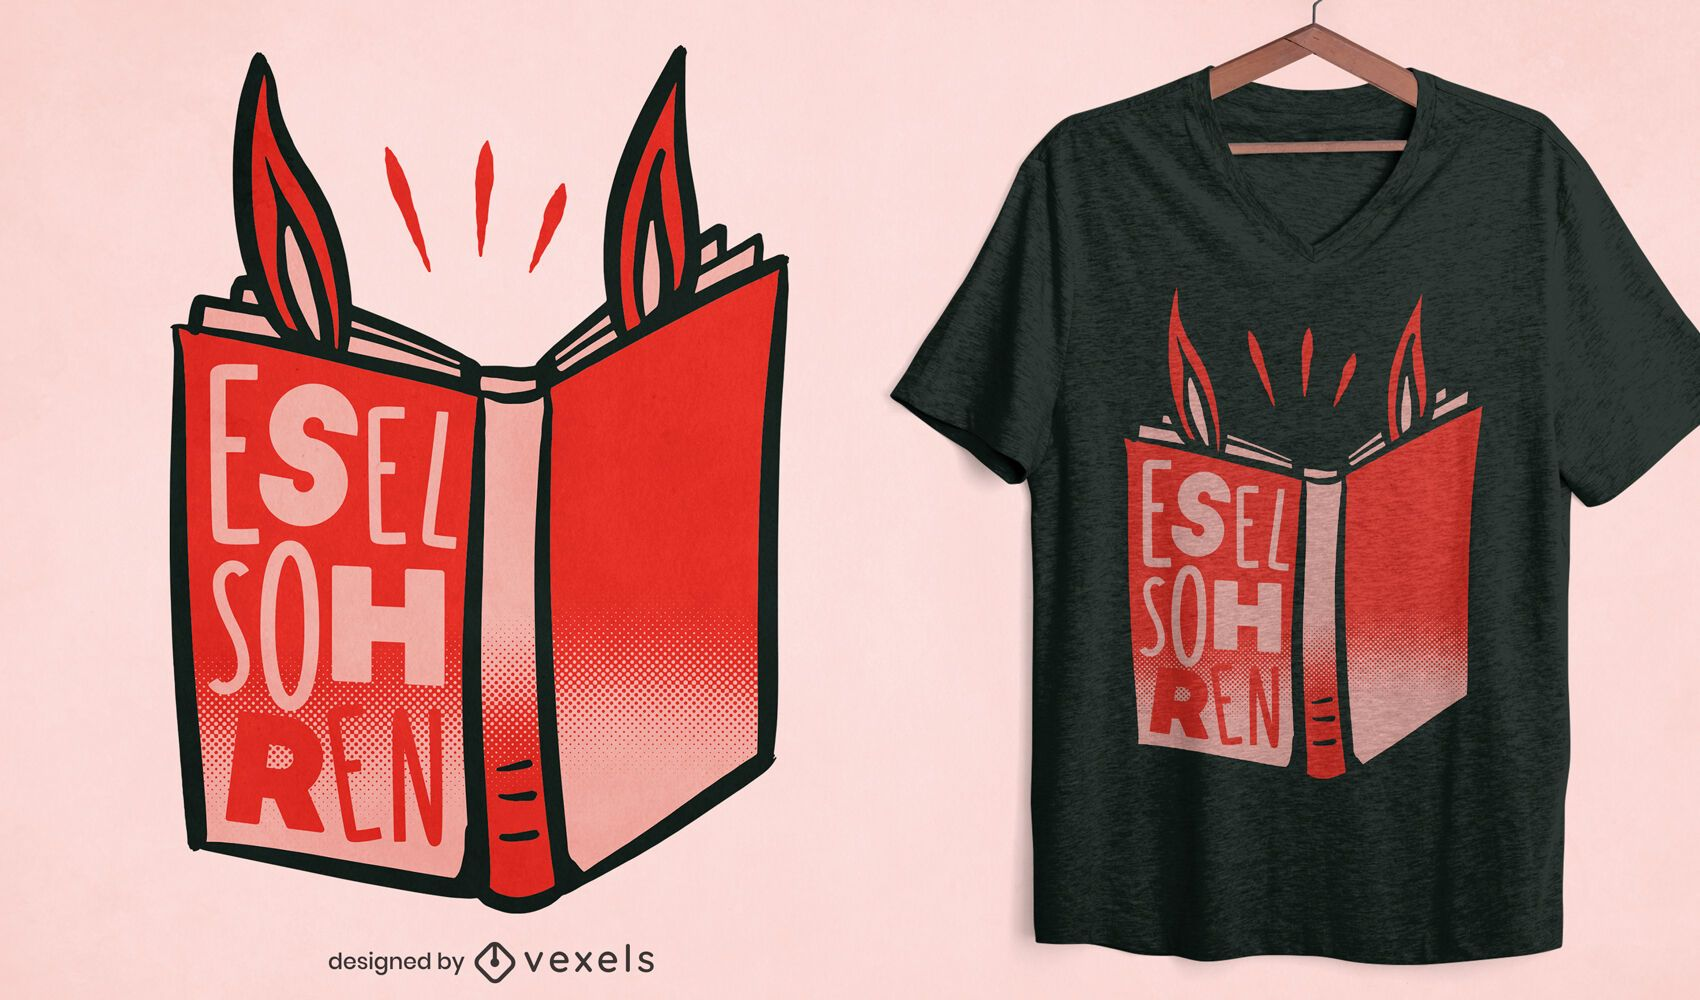 Book with donkey ears t-shirt design